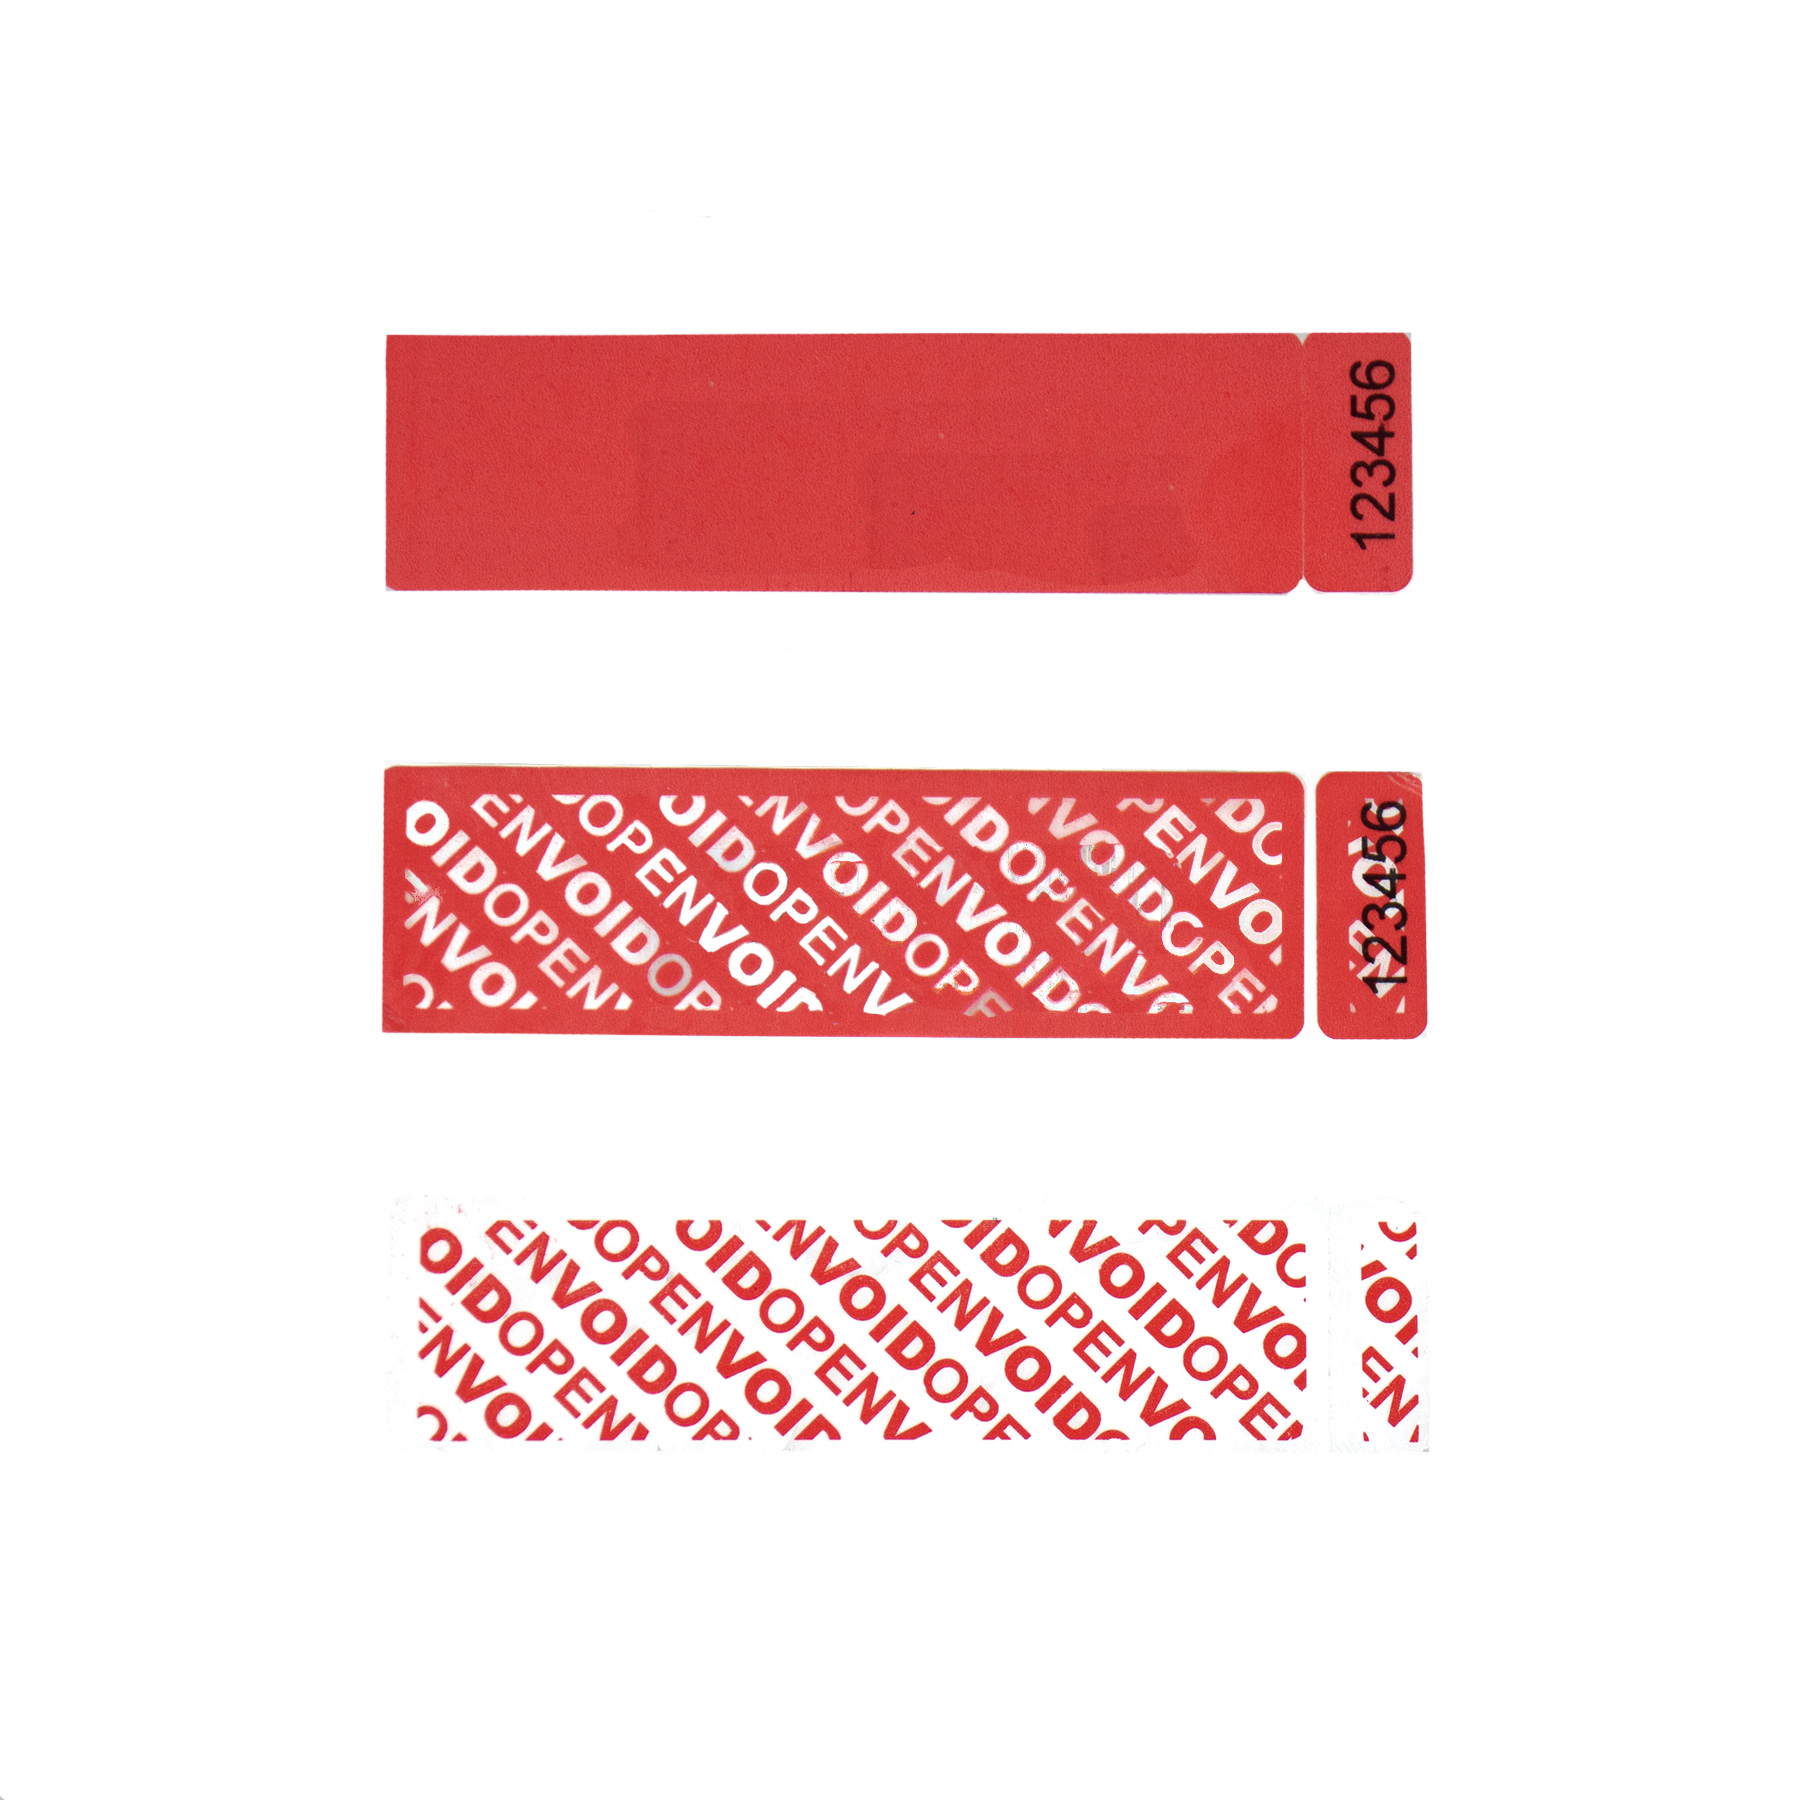 Red tamper evident security label with Dual Number Tab and numbers